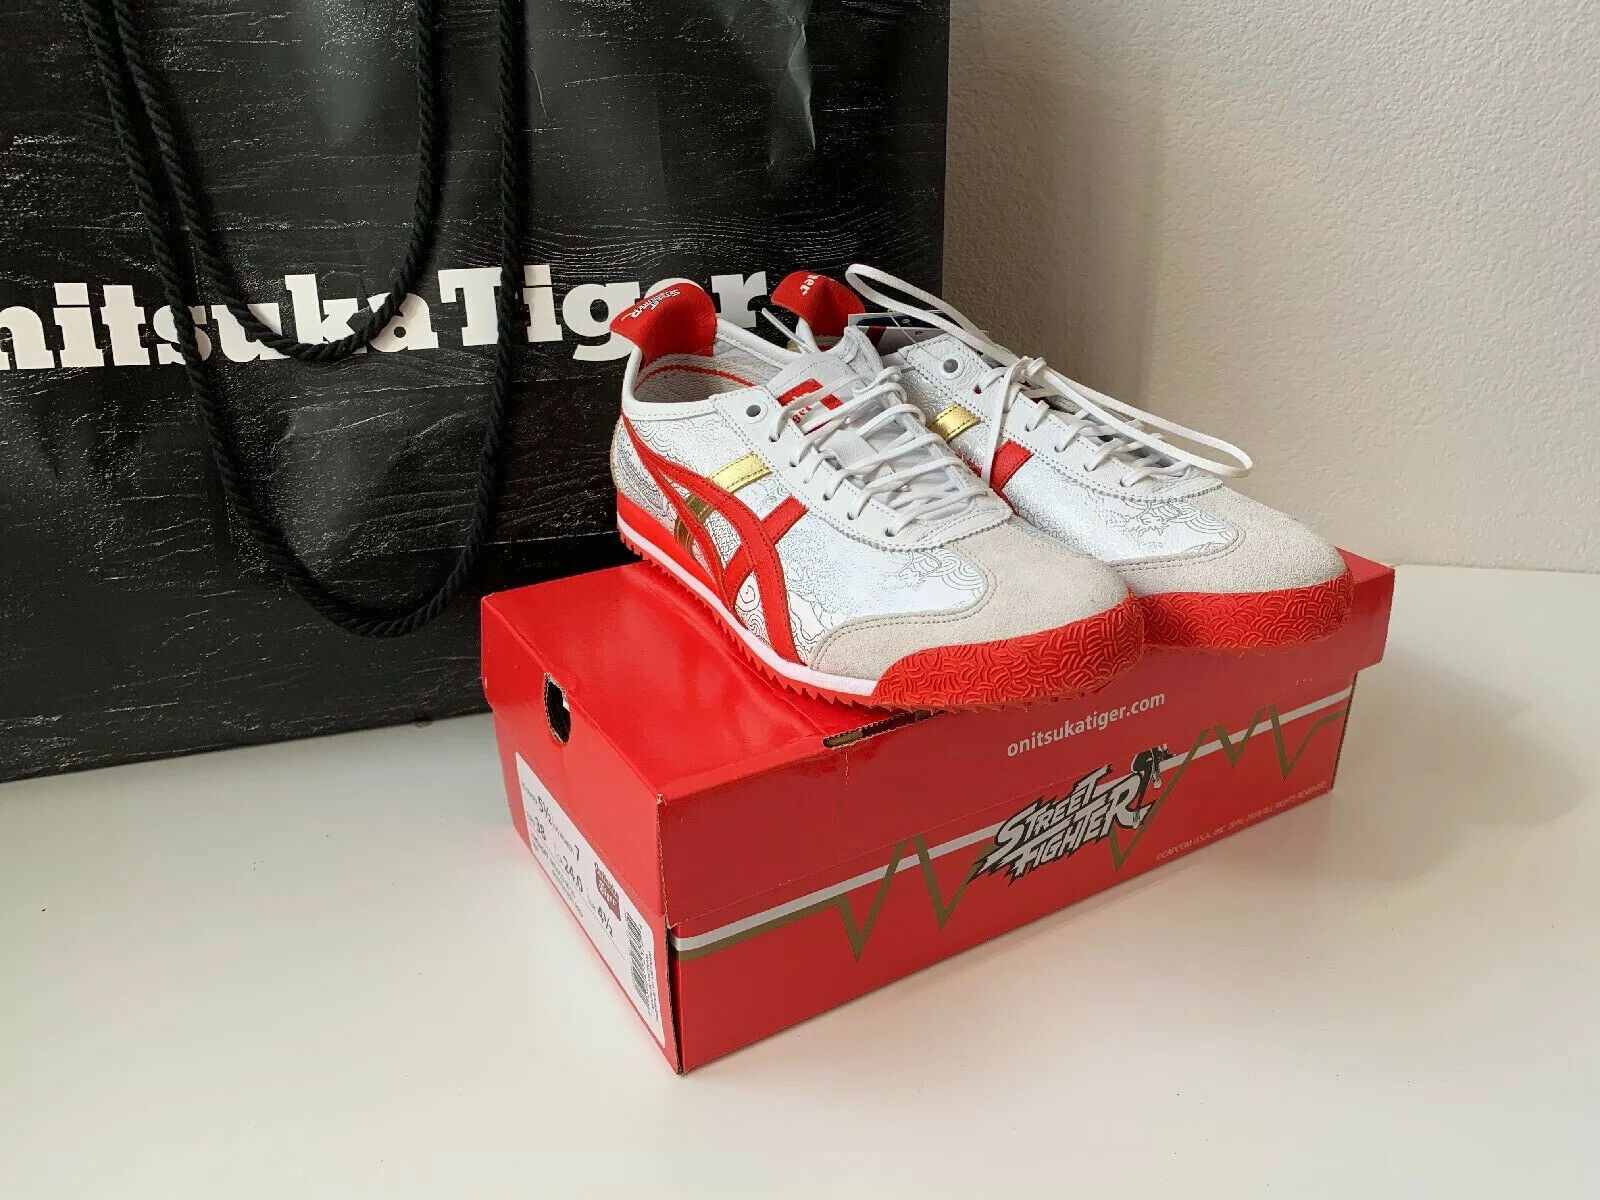 "NIB ASICS Onitsuka Tiger Shoes Sneakers Street Fighter Chun Li Red Size 7.5"" image 1"